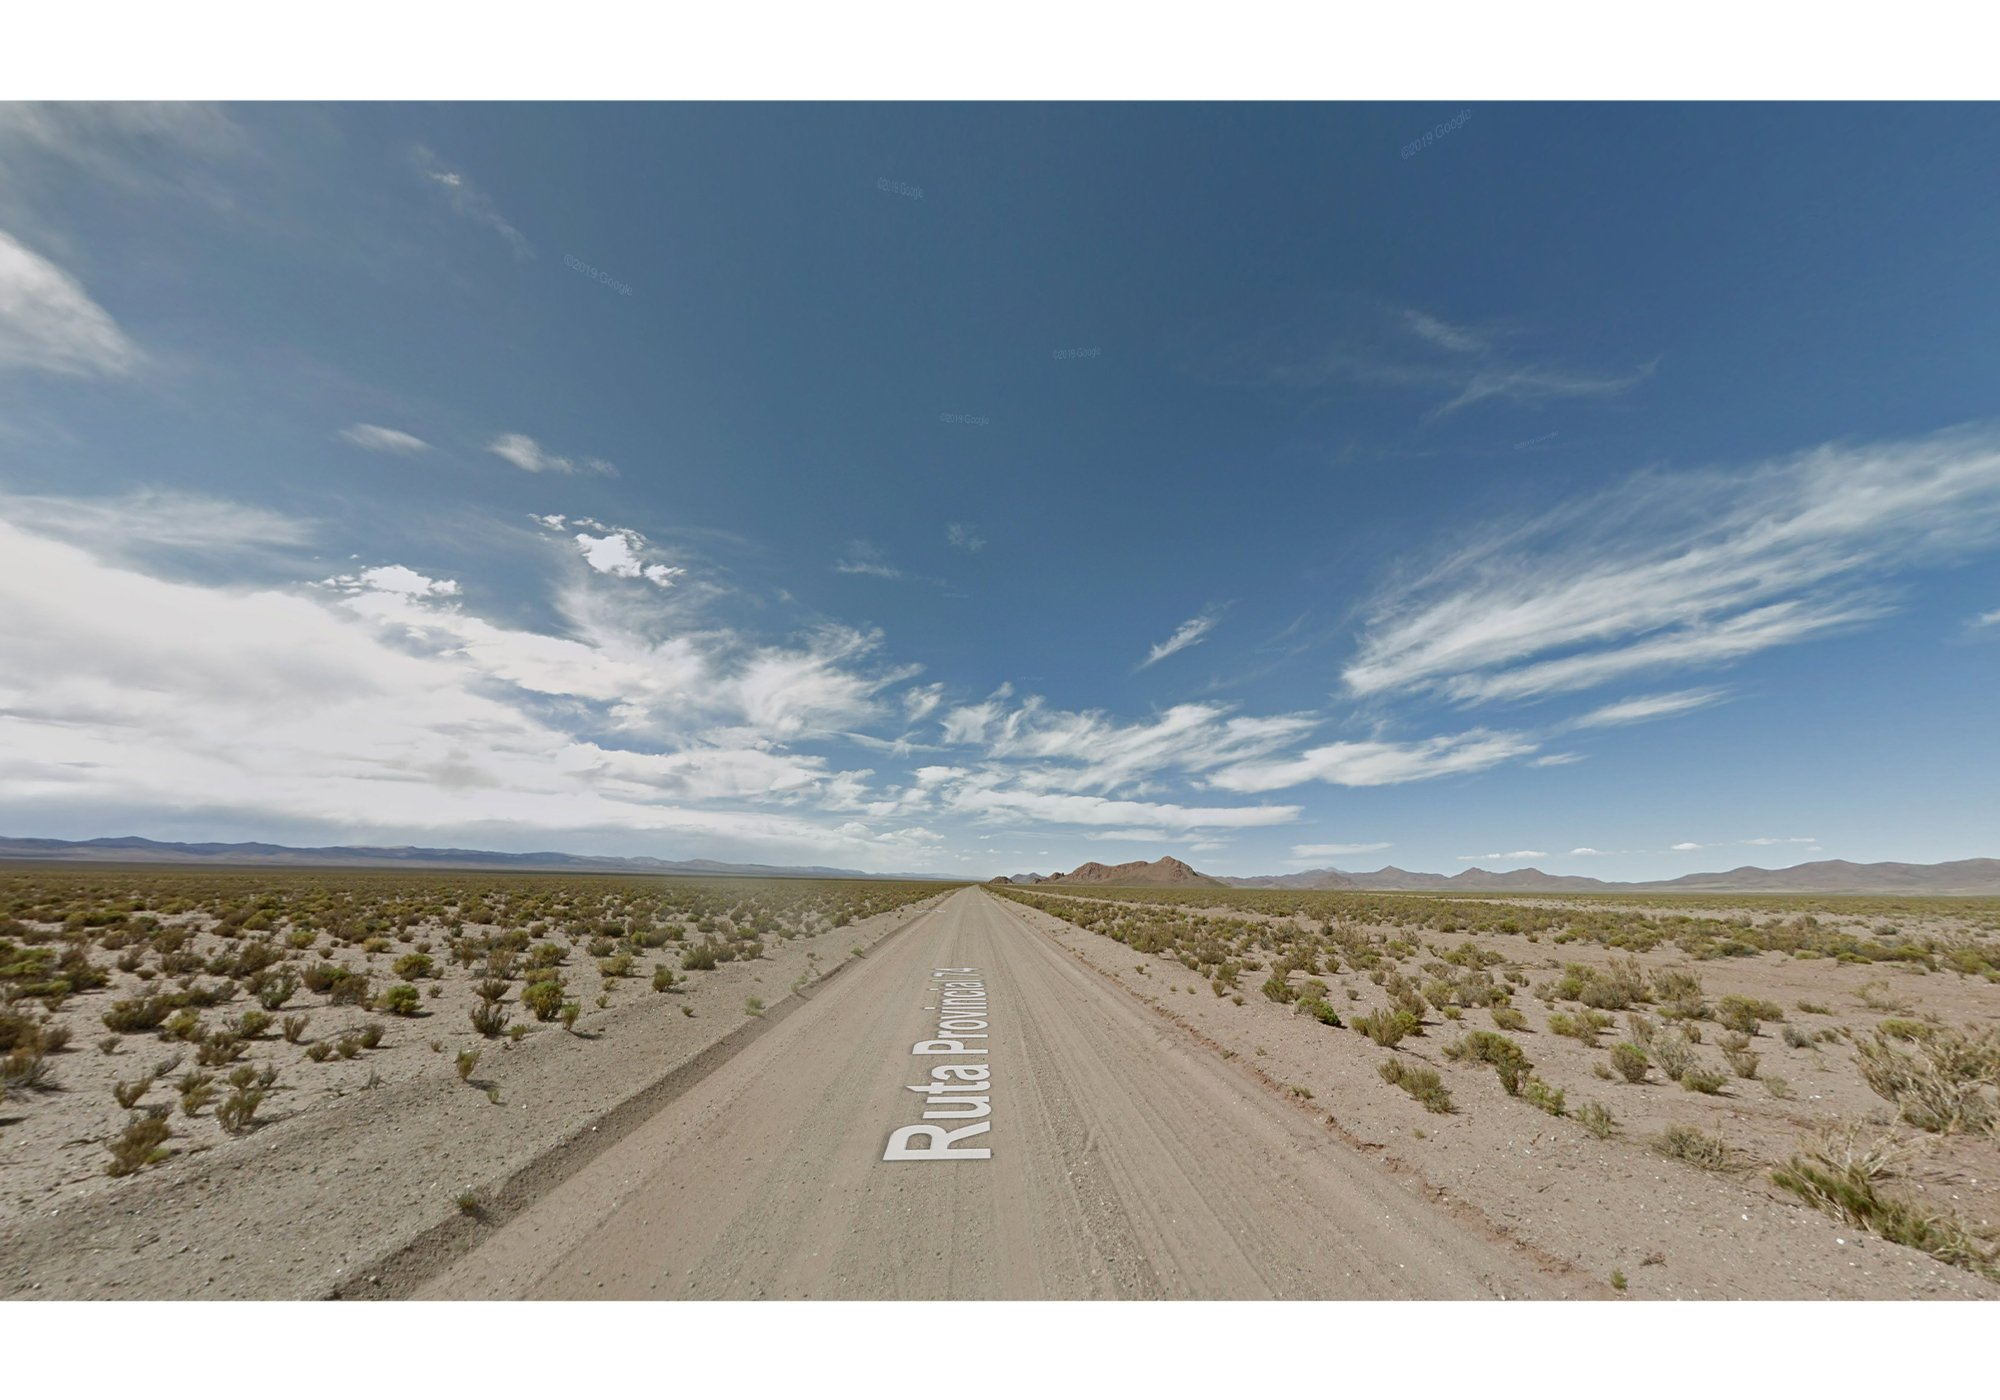 Take a virtual travel day with Street View